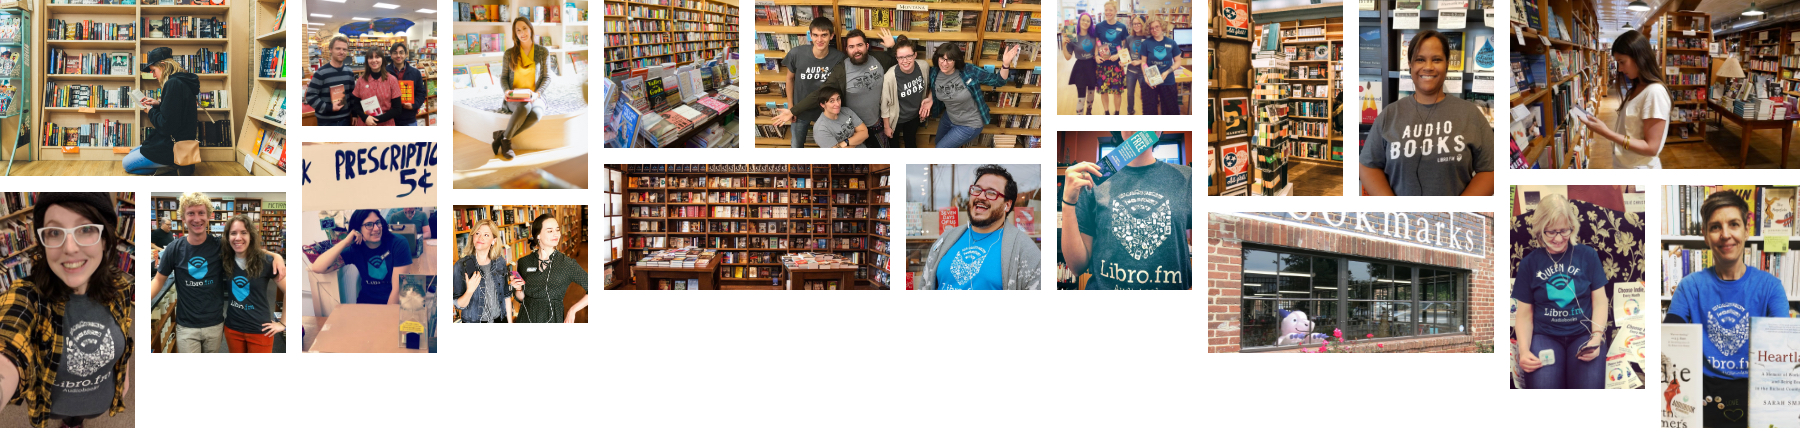 Collage of Booksellers